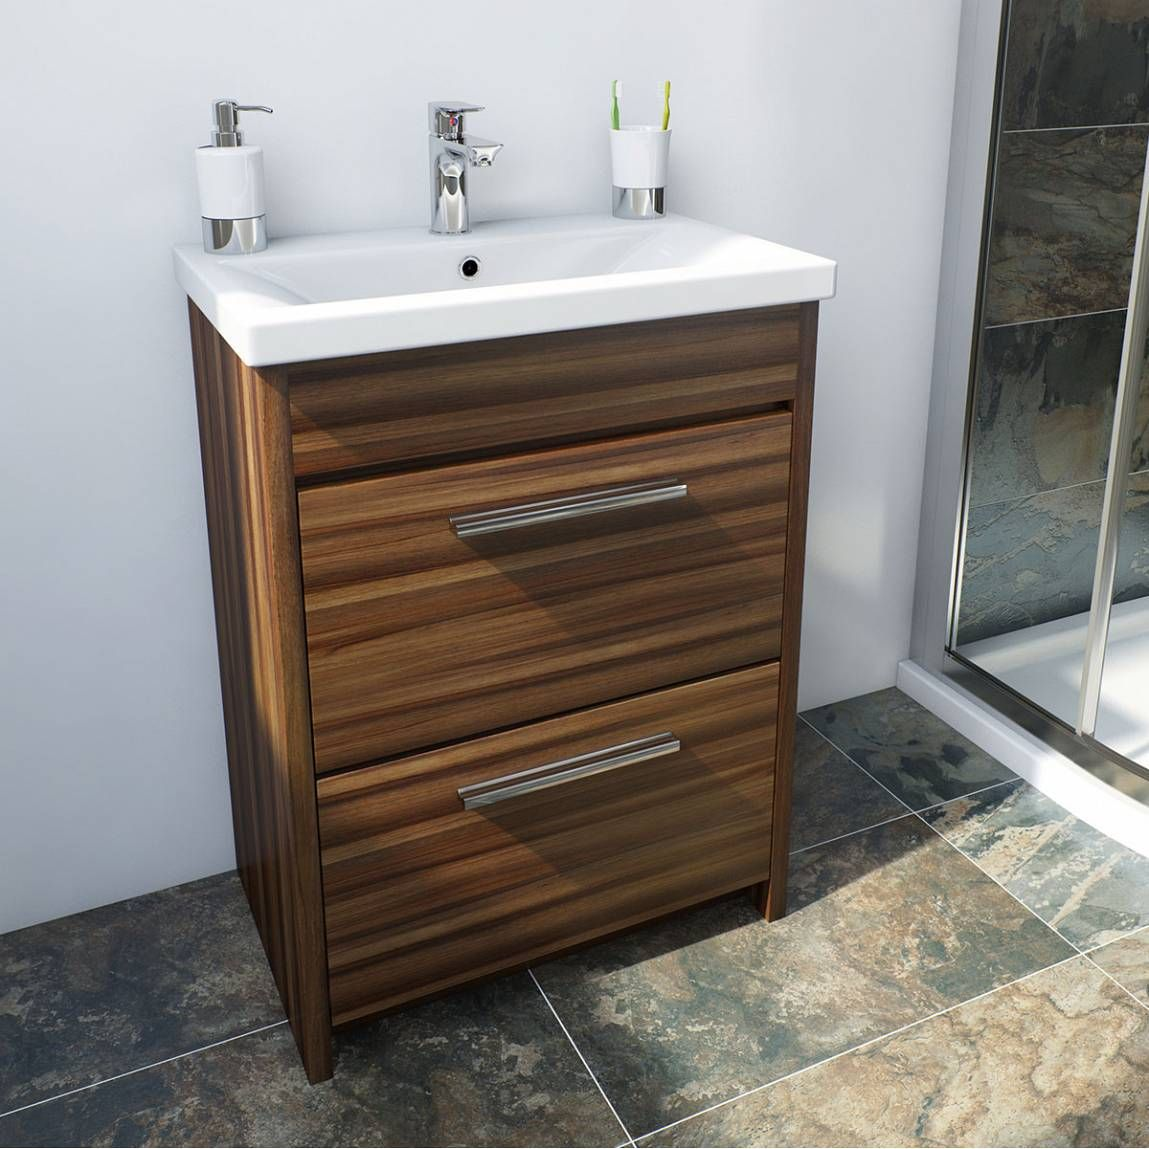 Bathroom Accessories Victoria Plumb smart walnut floor mounted 500 drawer unit & basin - victoria